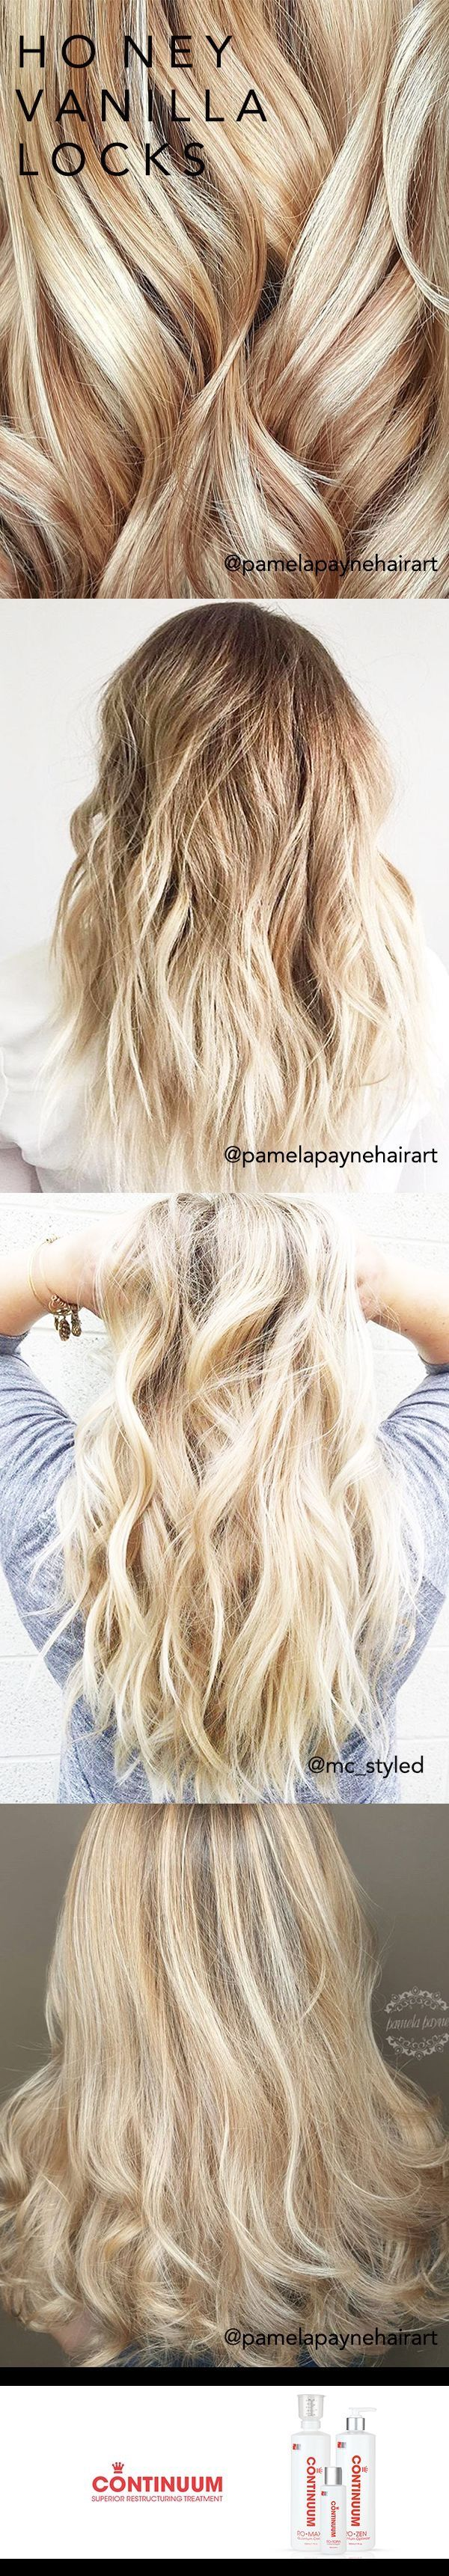 best hair images on pinterest hair colors blonde hair and egg hair